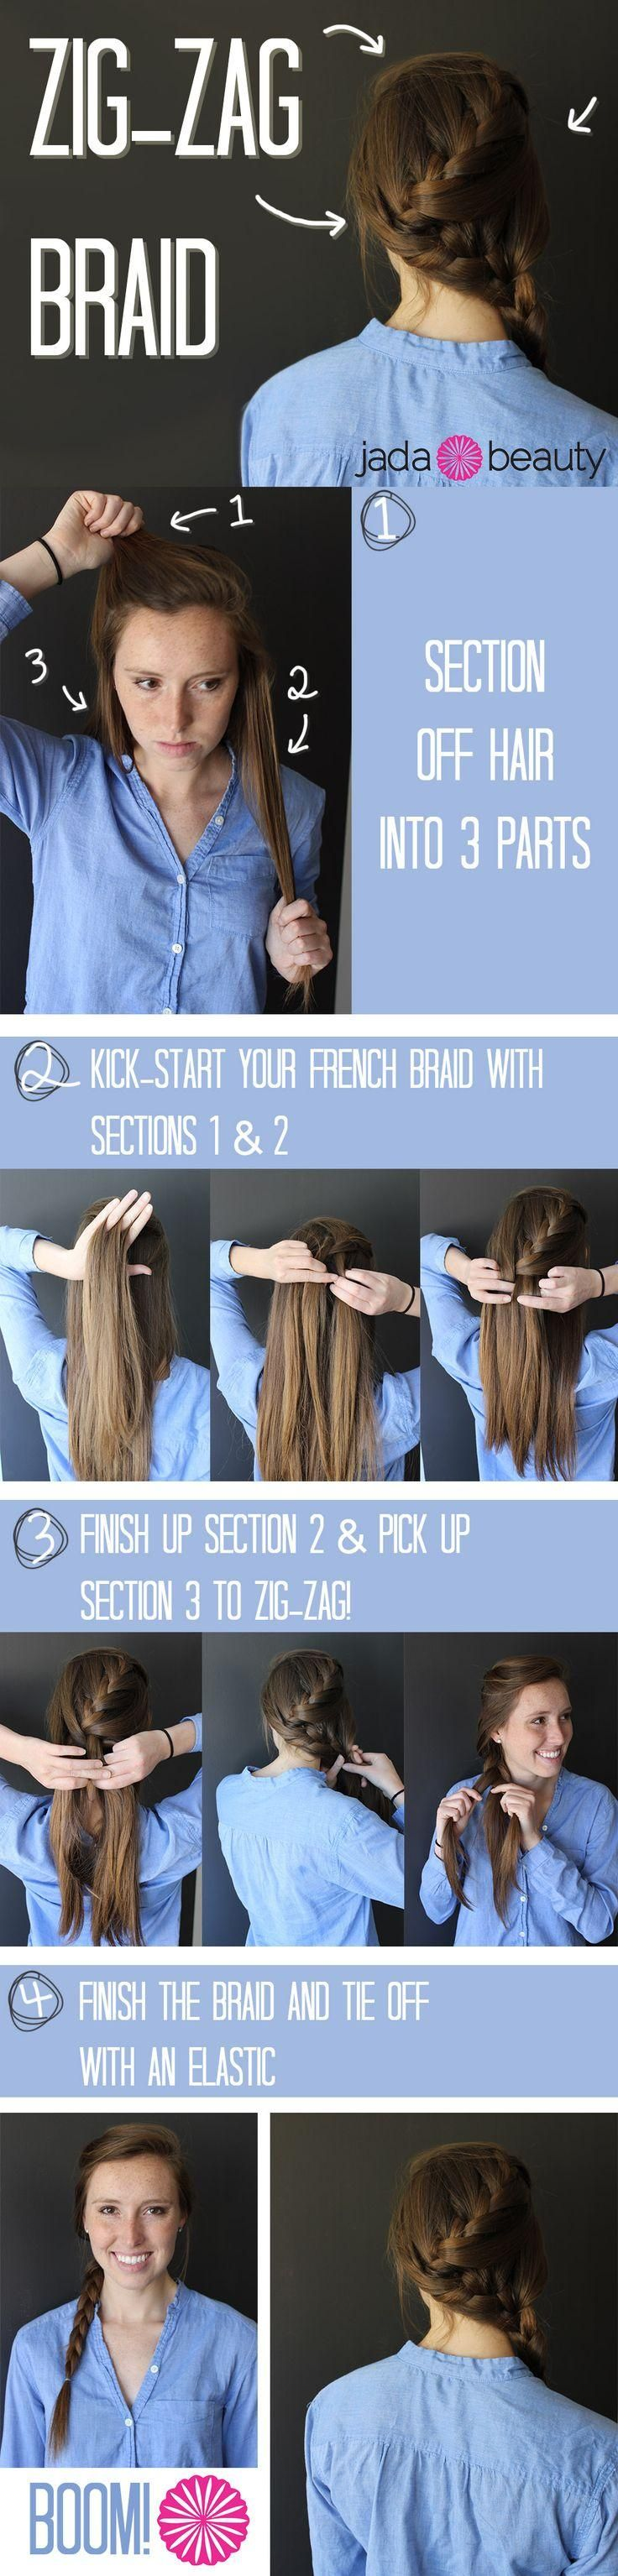 Zig-Zag Braid Tutorial. Must practice this hair style. Great for the summer time